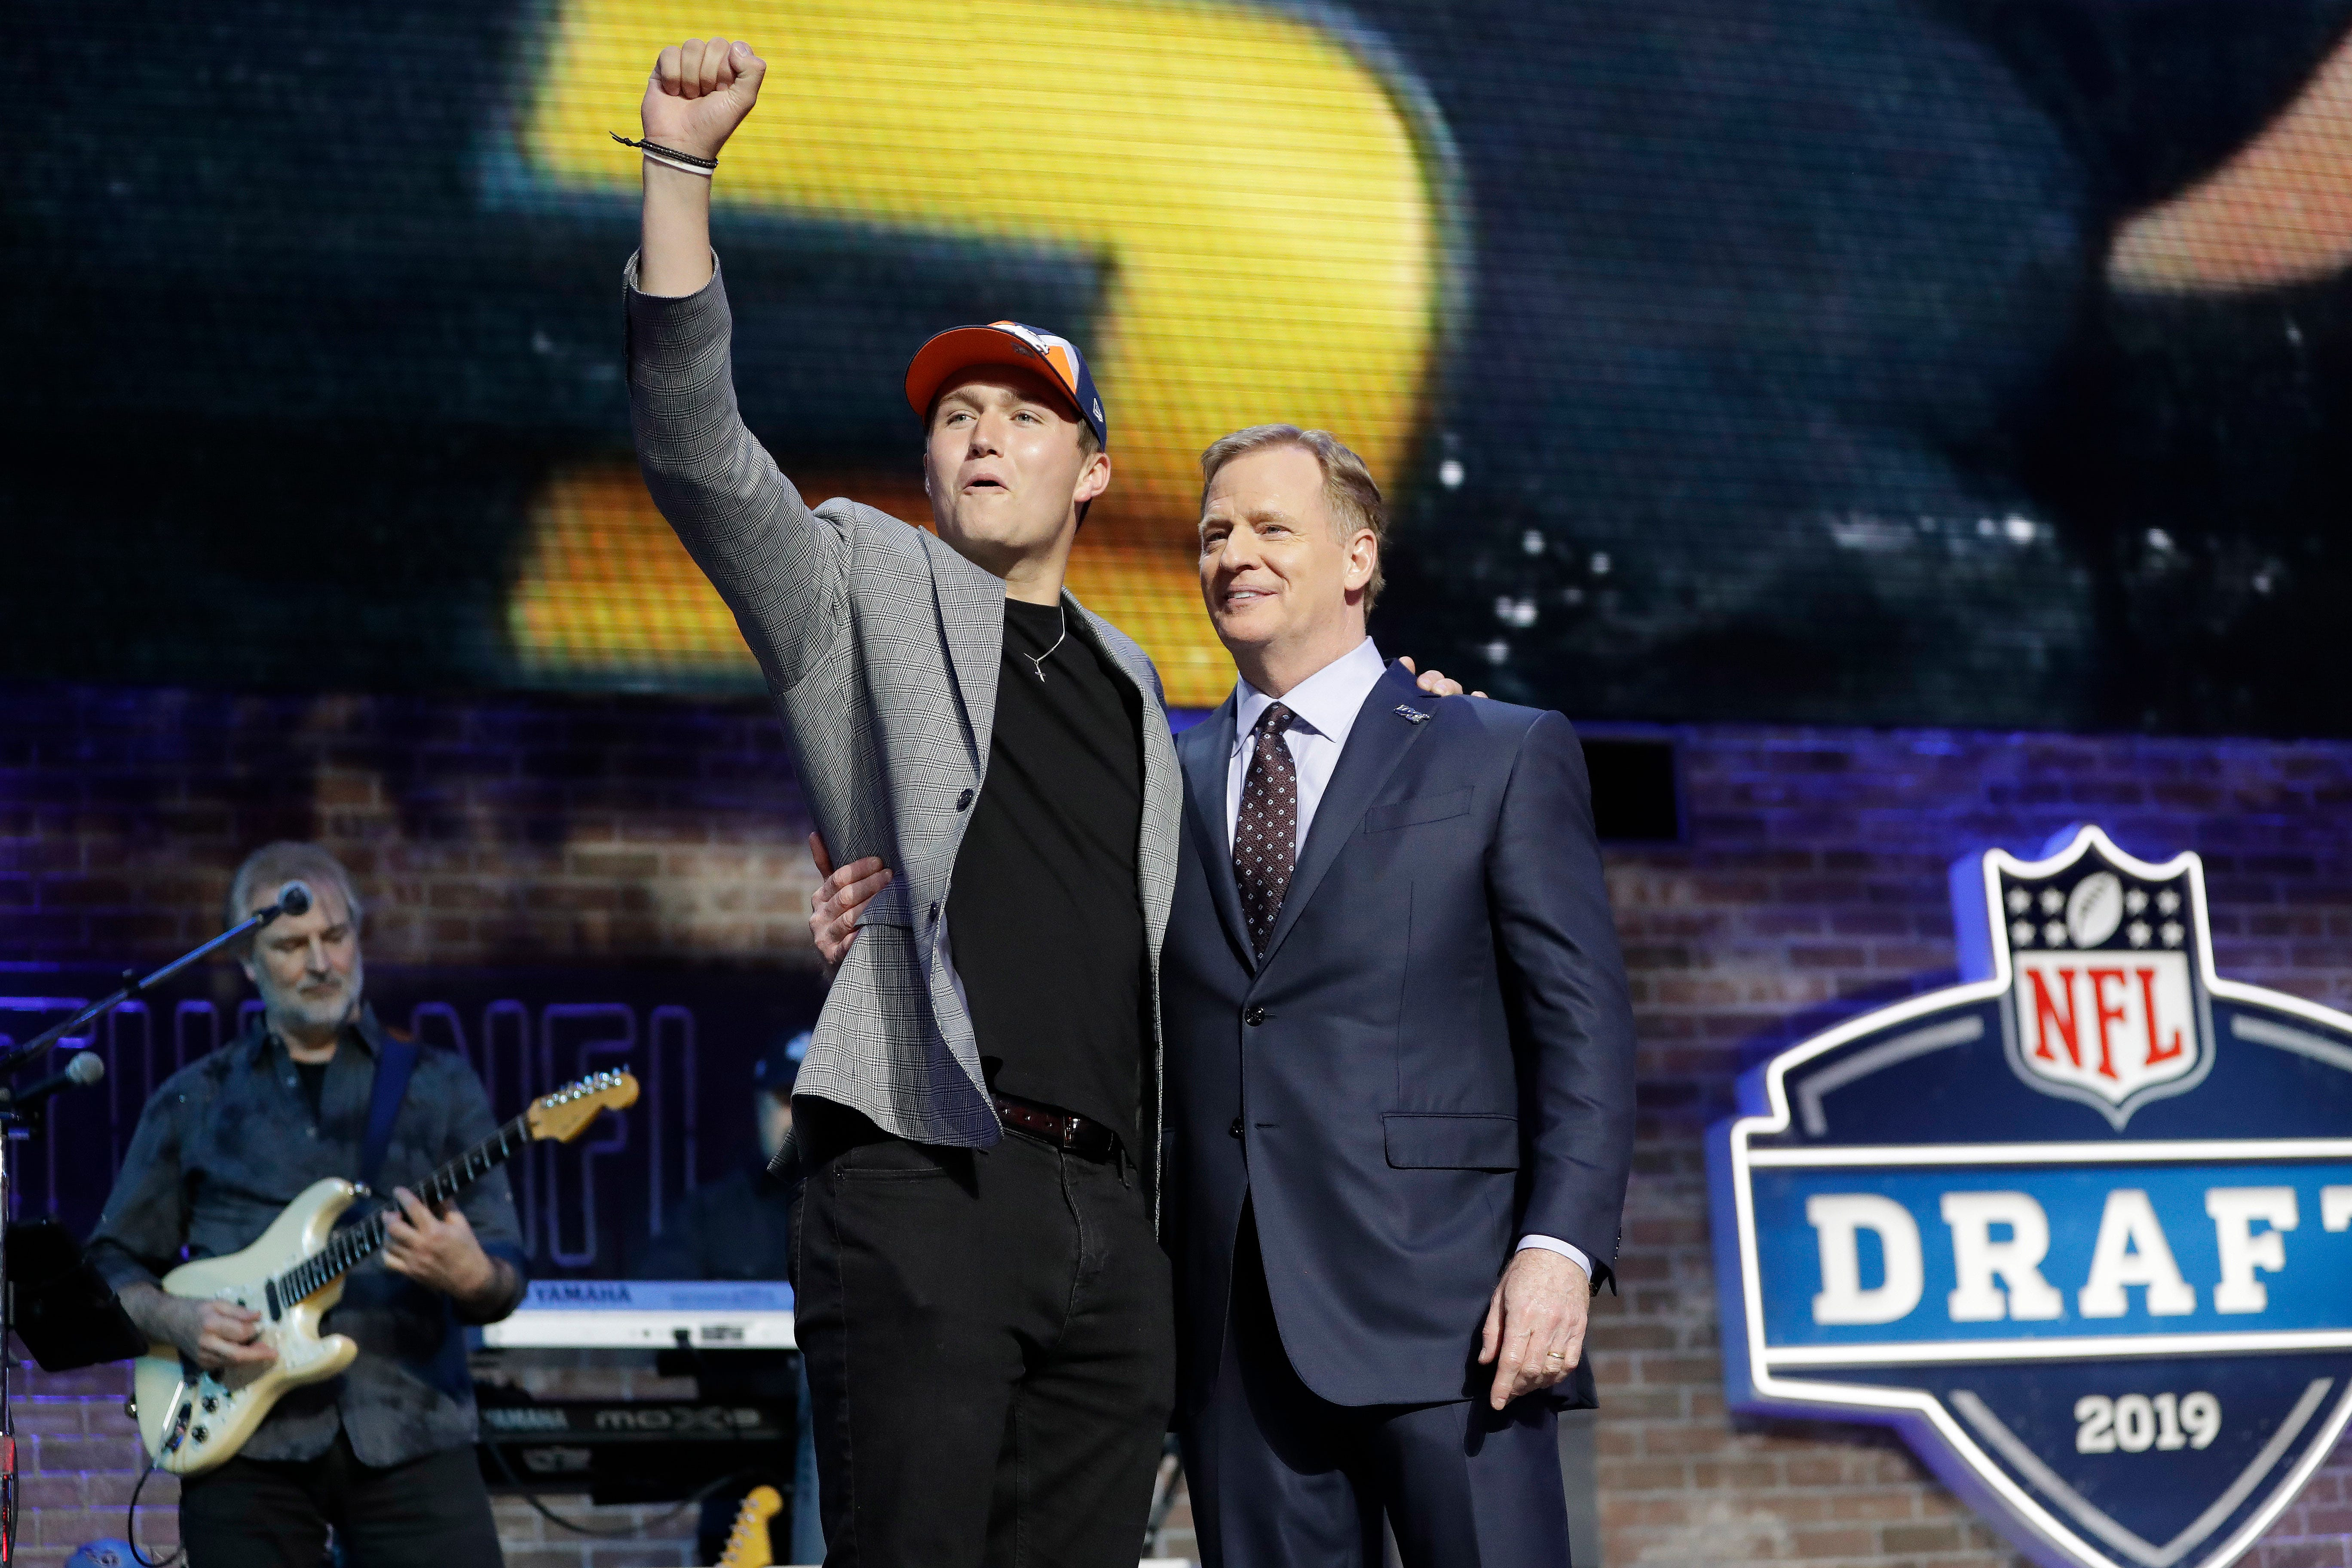 Missouri quarterback Drew Lock poses with NFL commissioner Roger Goodell after the Denver Broncos selected Lock in the second round.